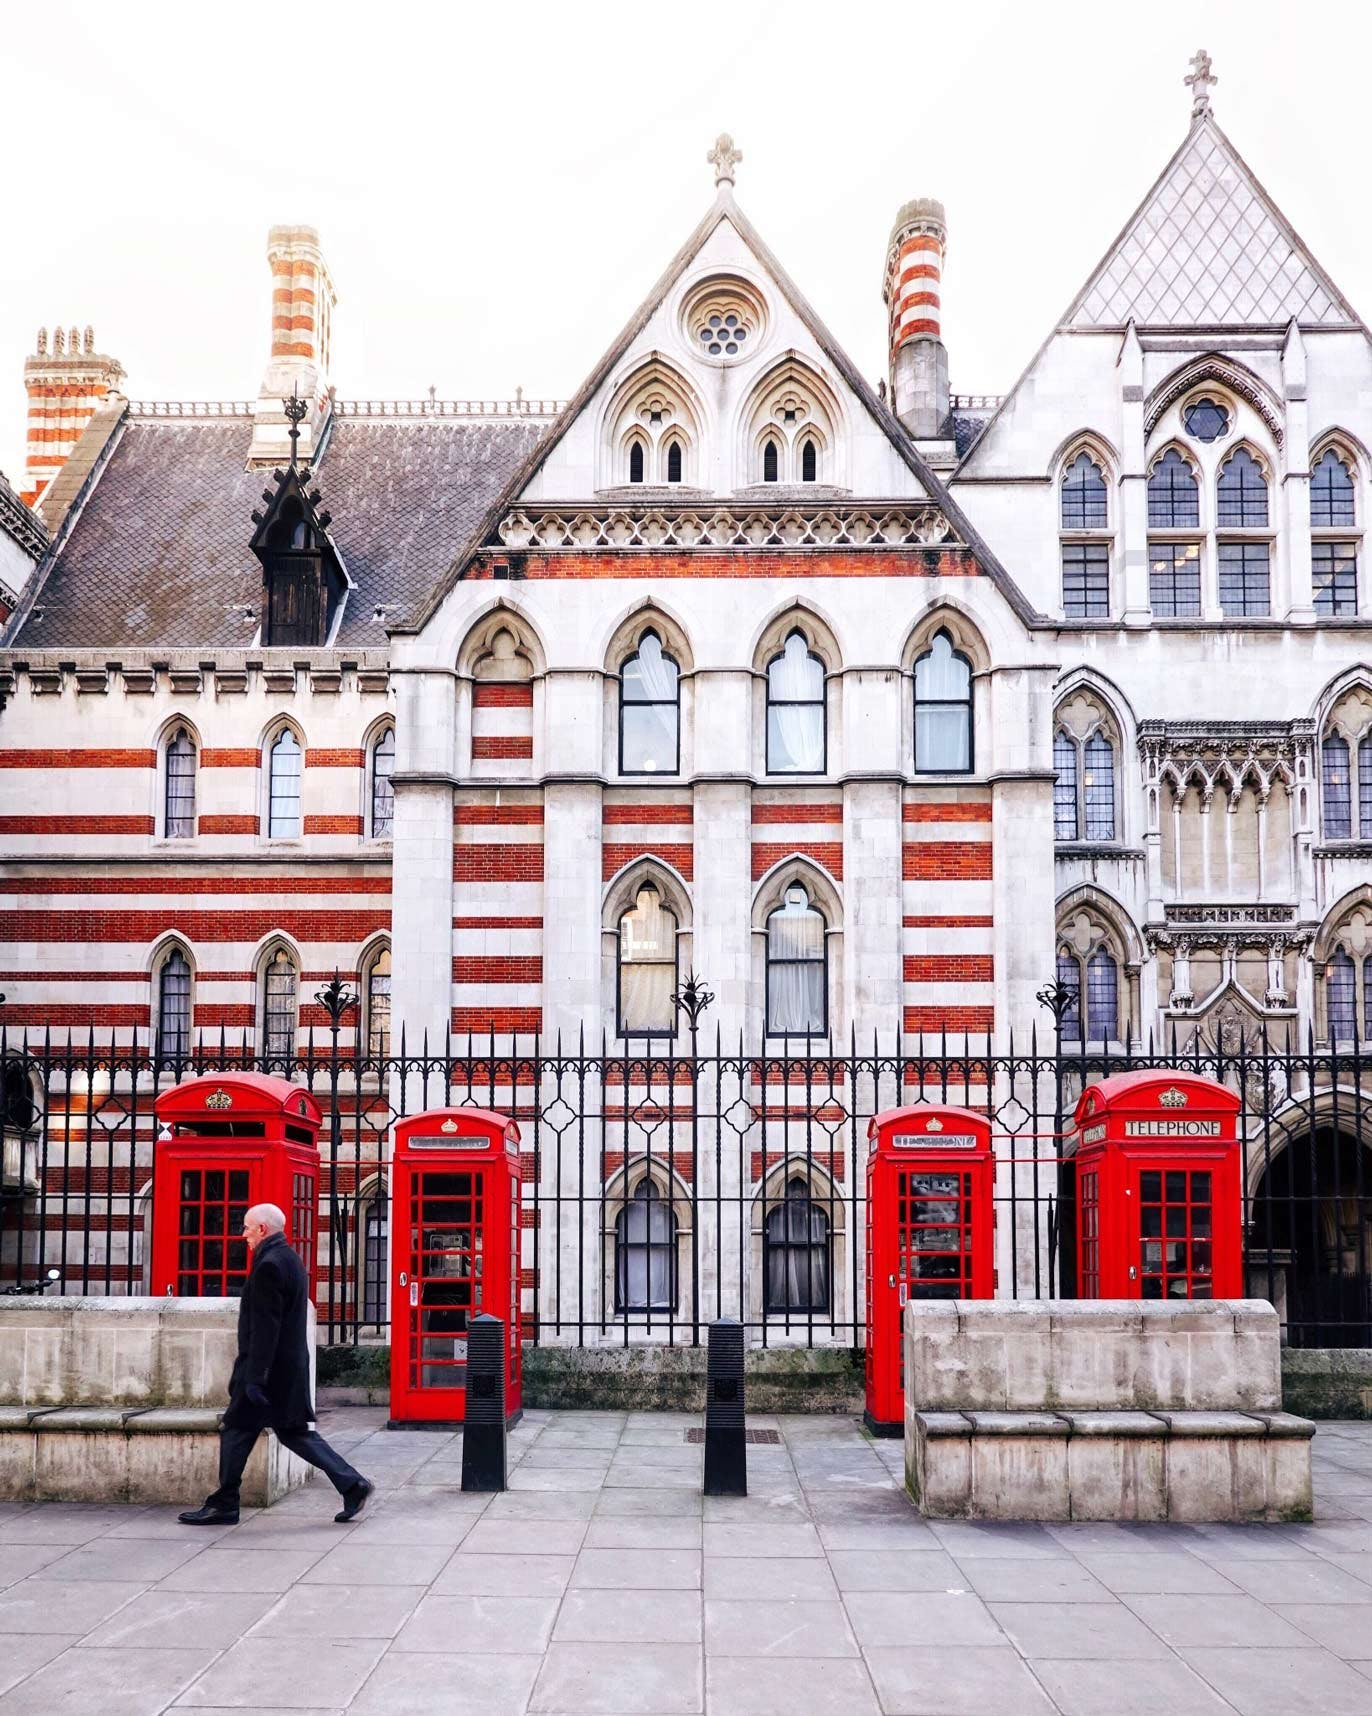 Royal Courts of Justice on Carey St